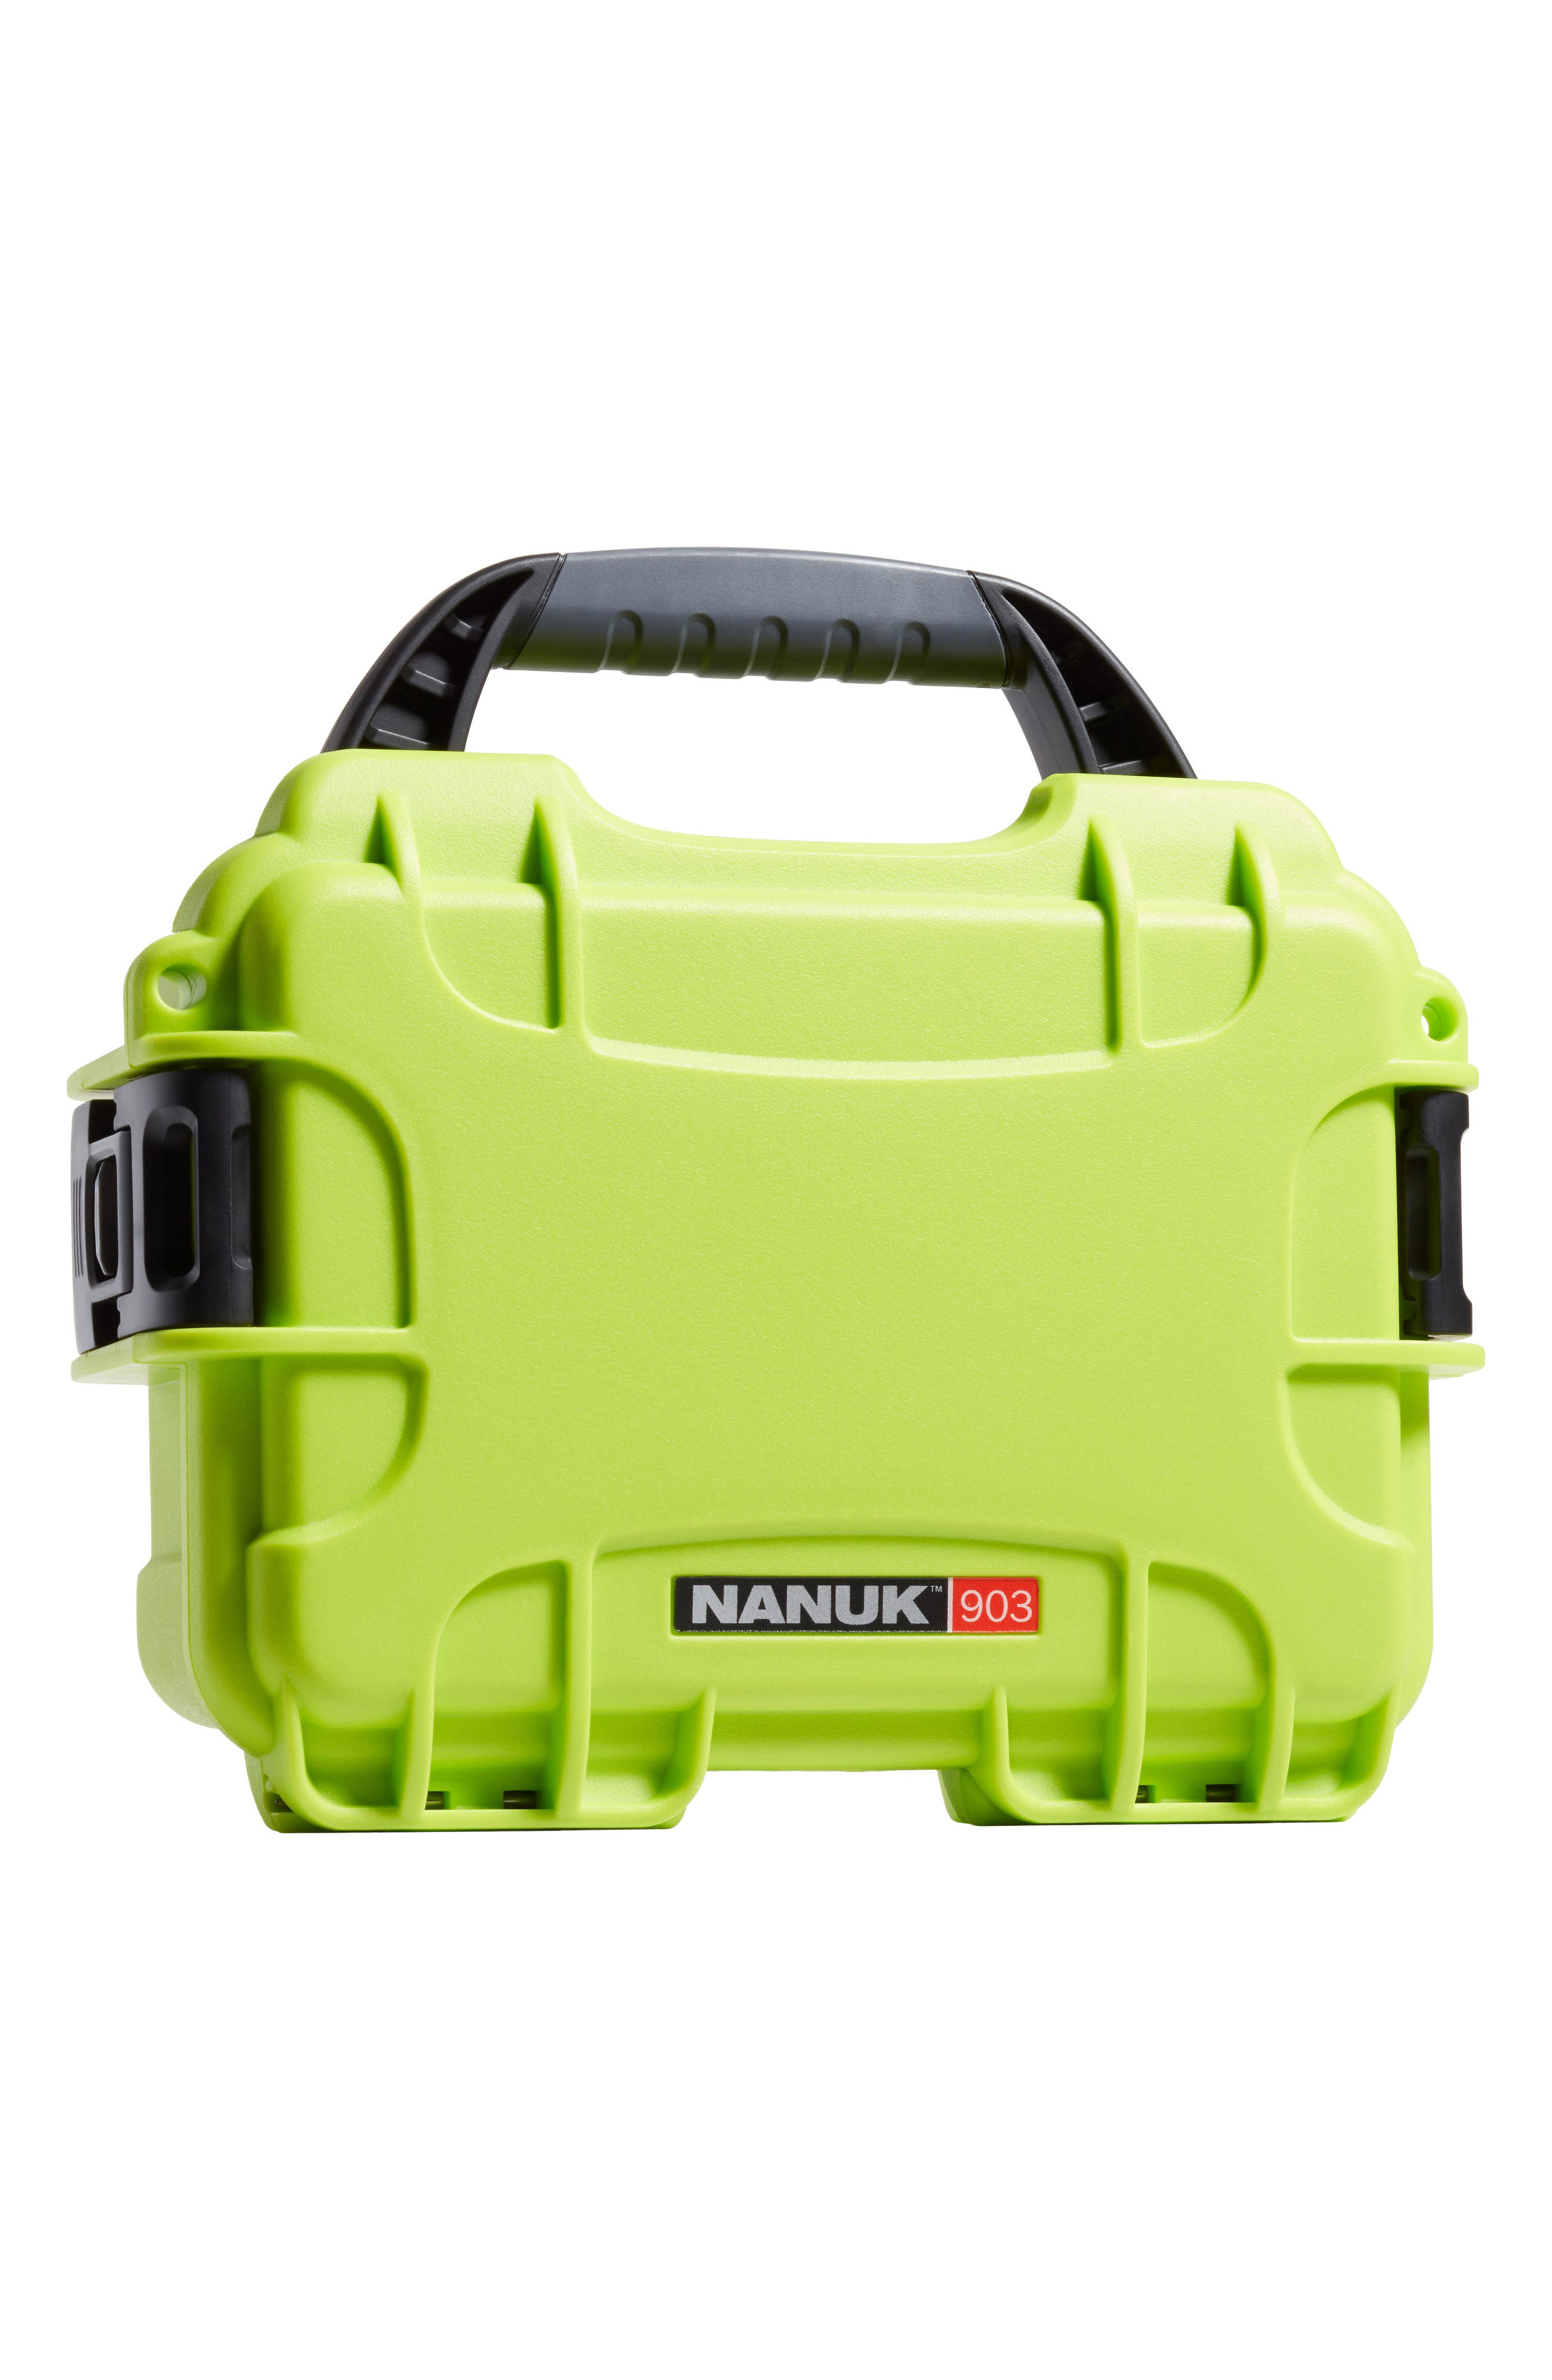 Nanuk 903 Waterproof Hard Case